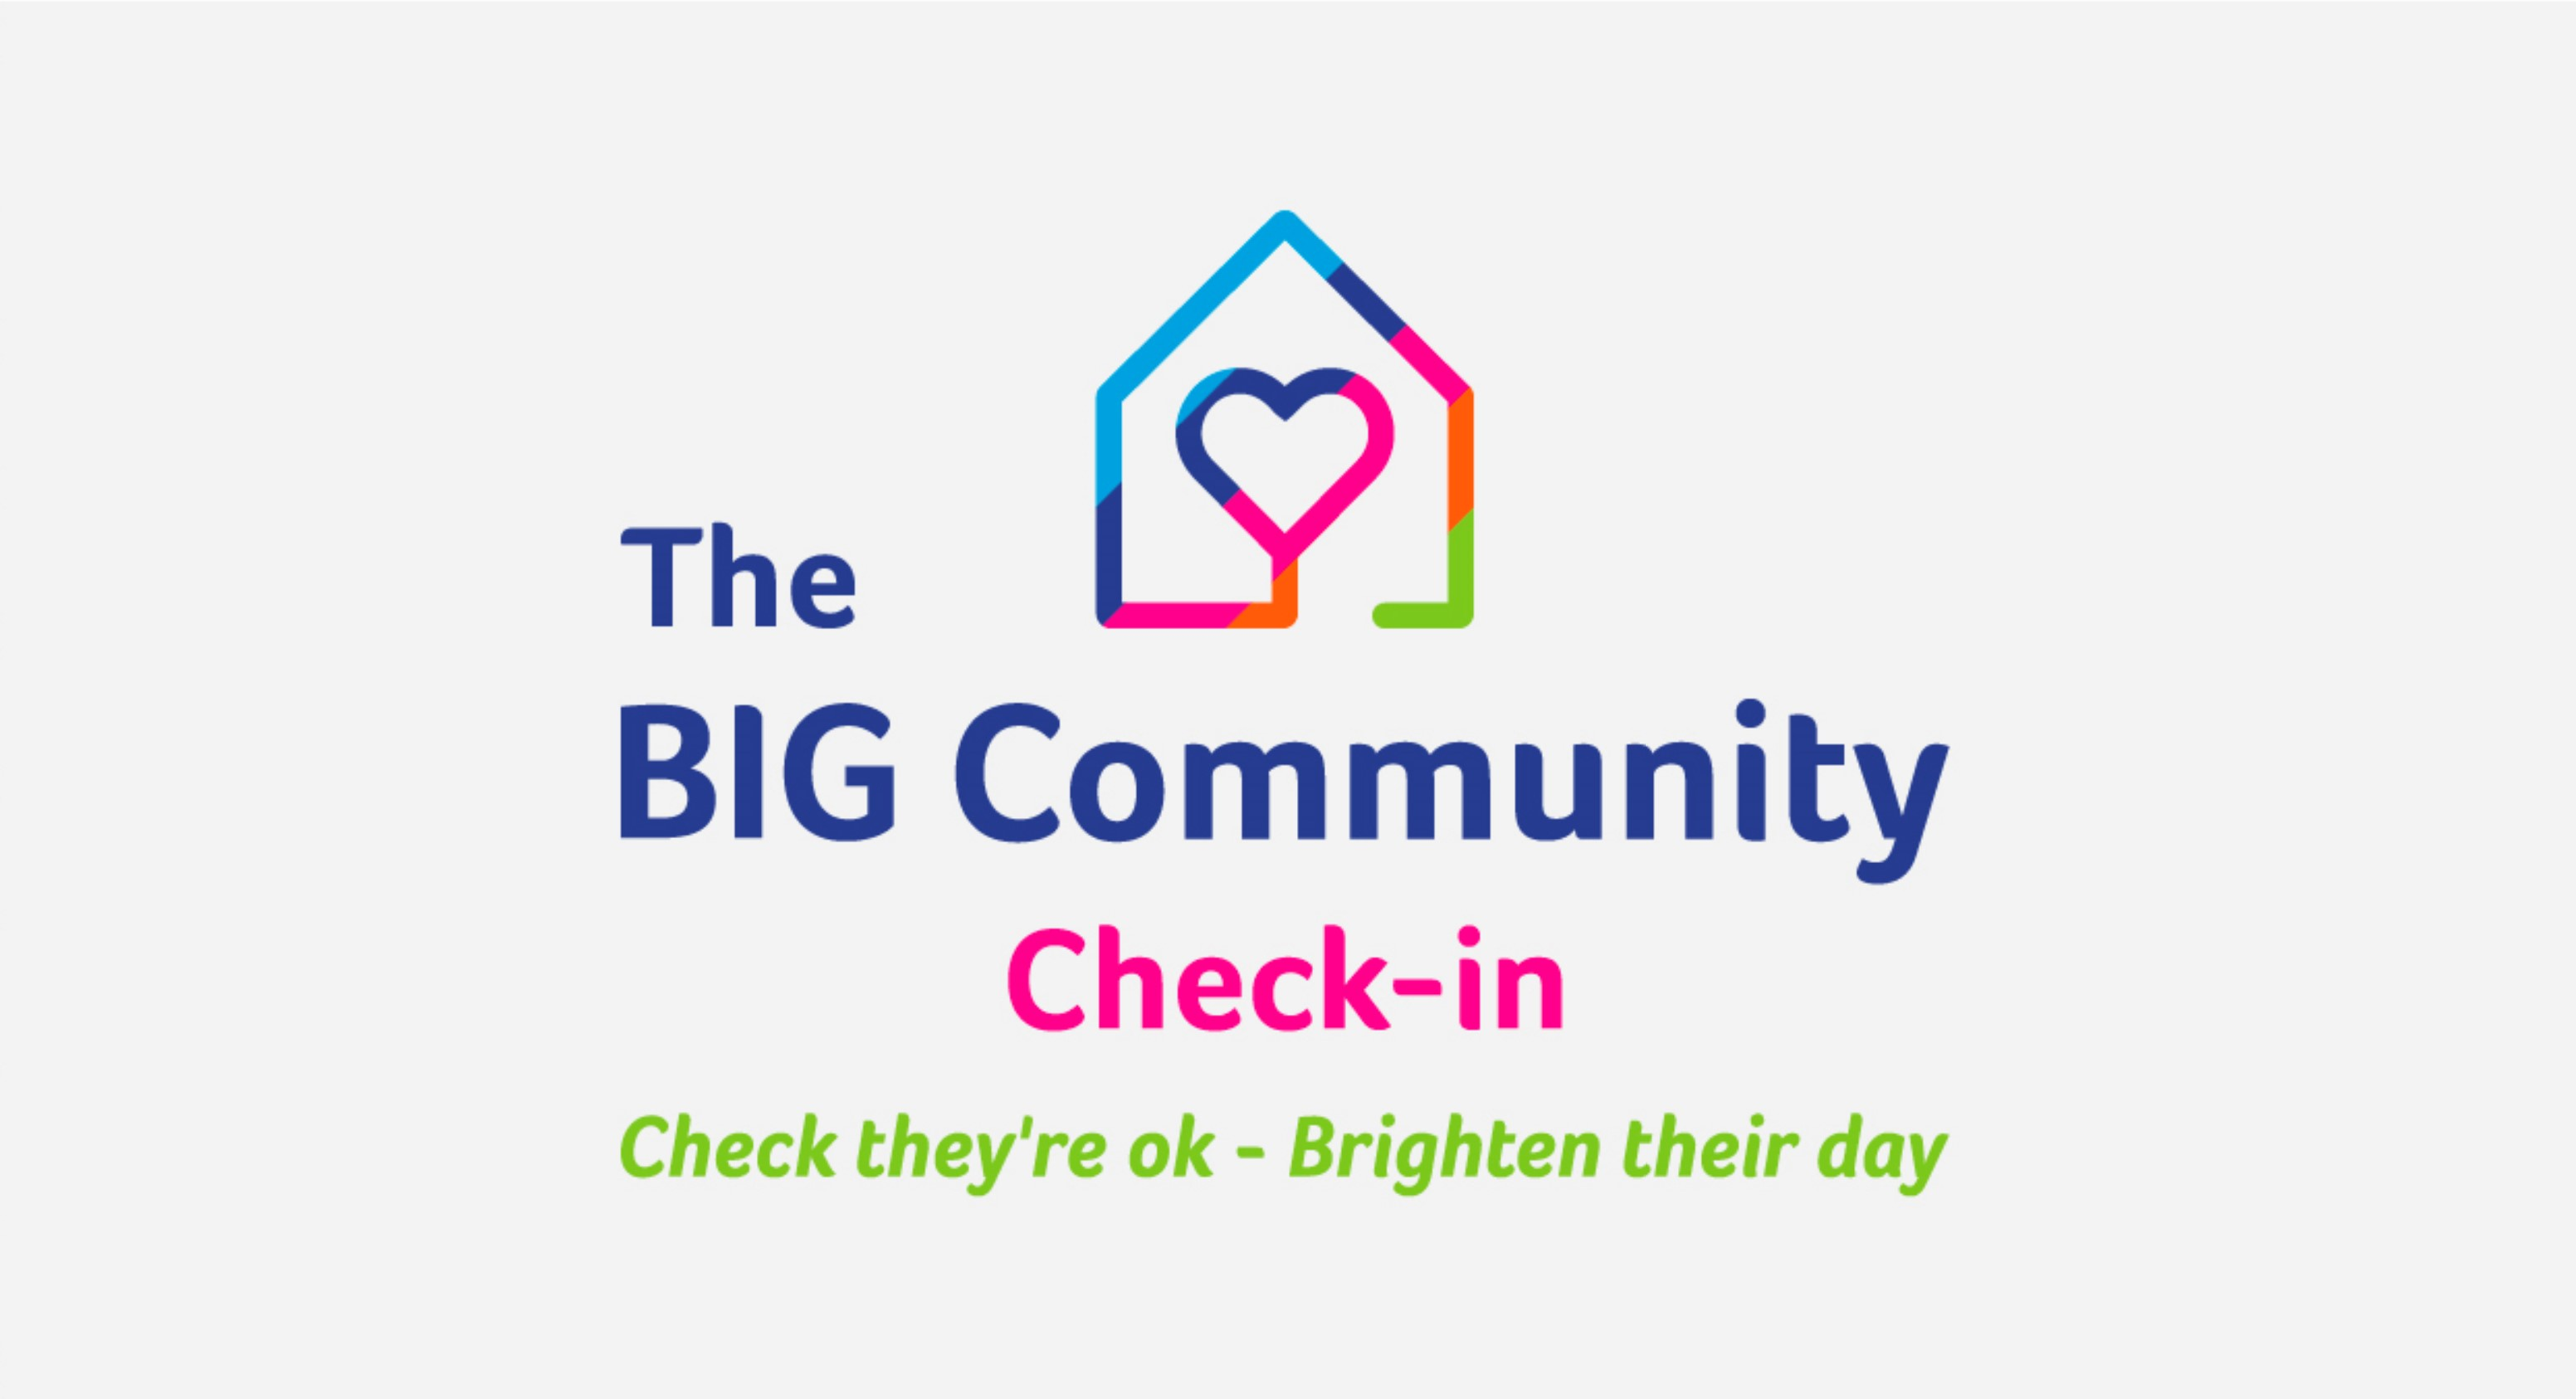 The BIG Community Check-in